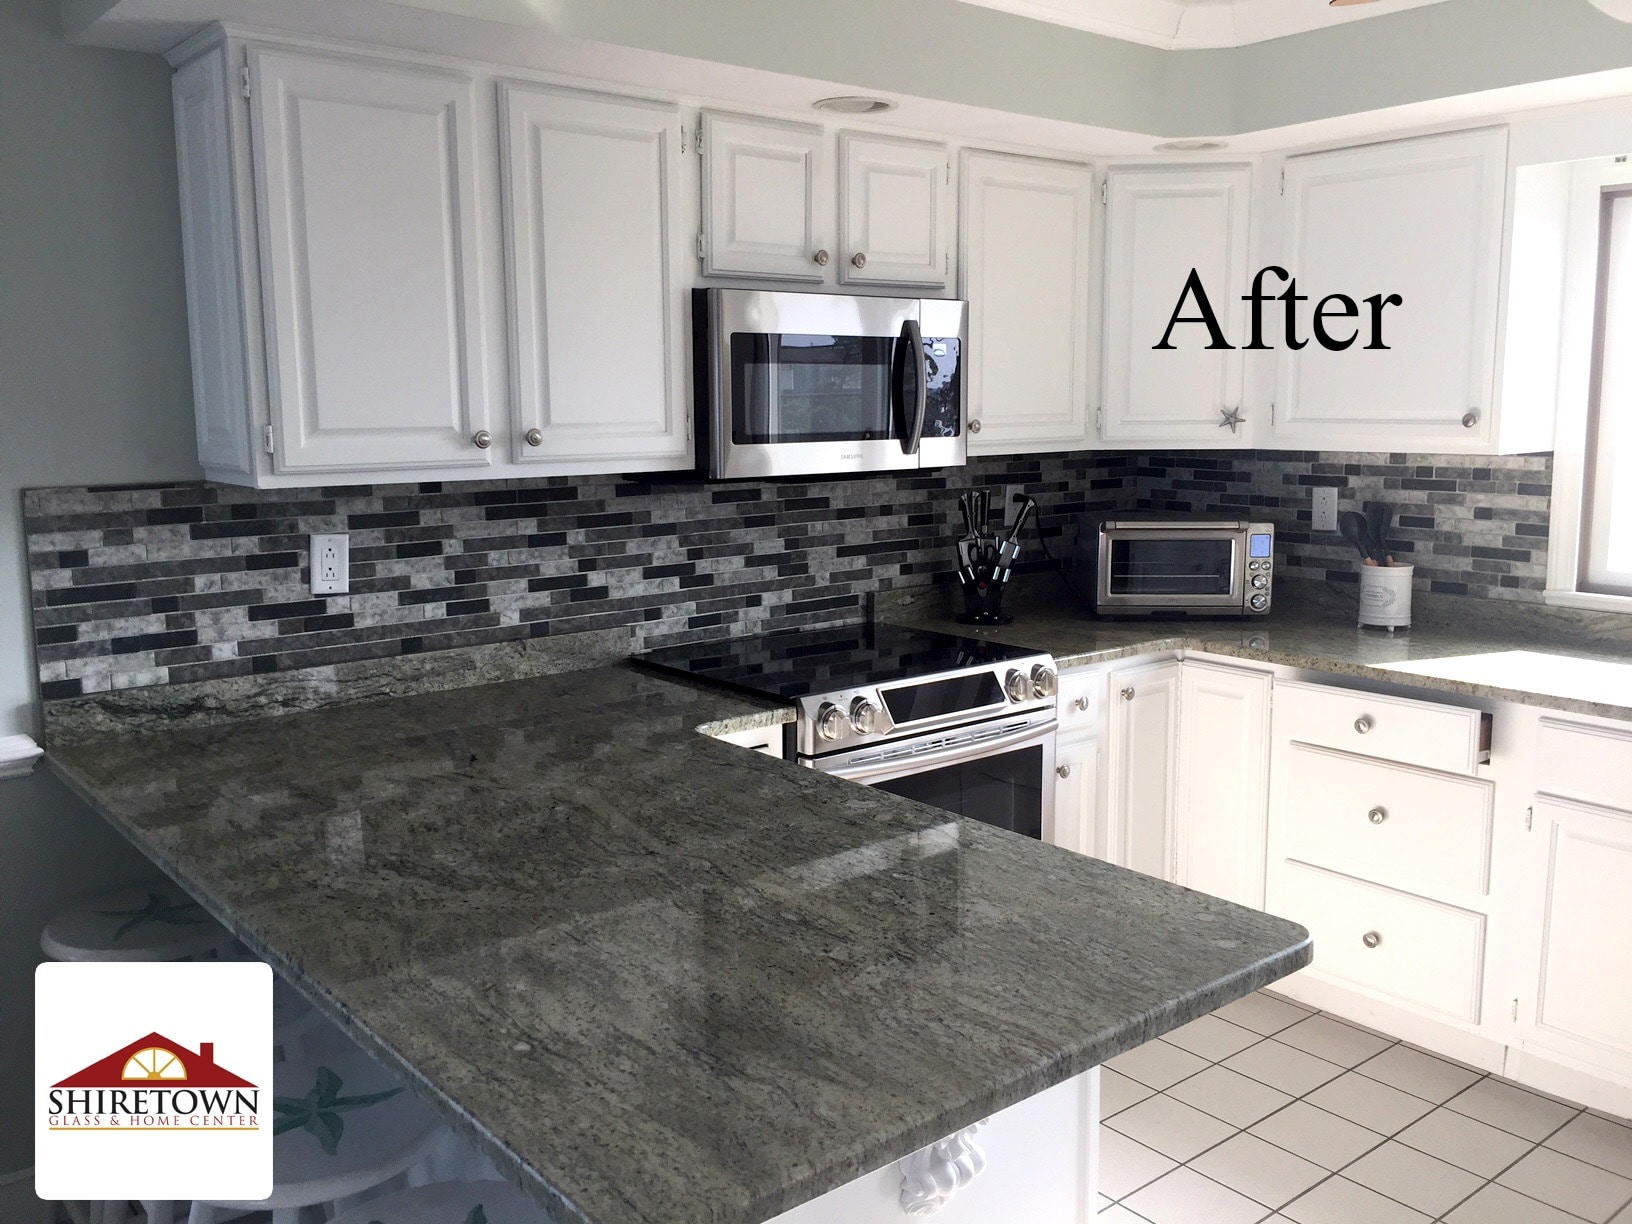 Kitchen Design & Installation Project Plymouth MA - After